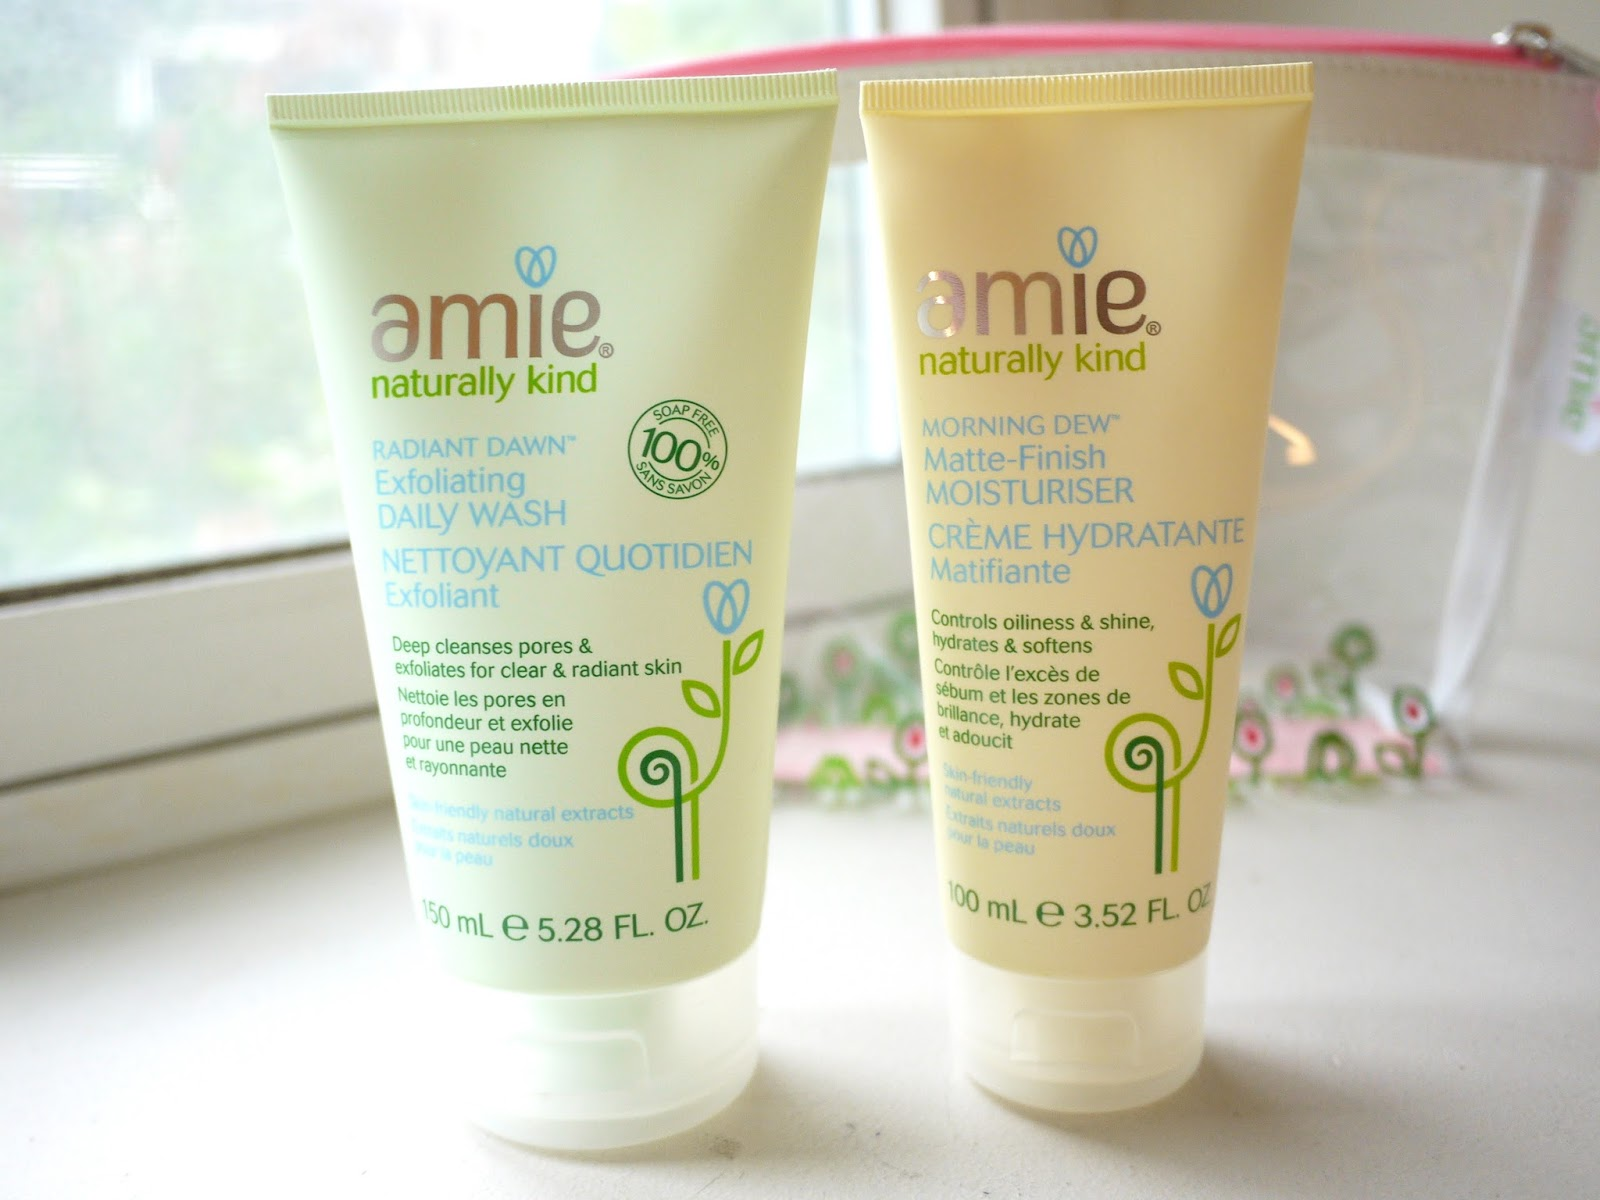 amie naturally kind skincare review exfoliating daily ash matte finihs moisturizer